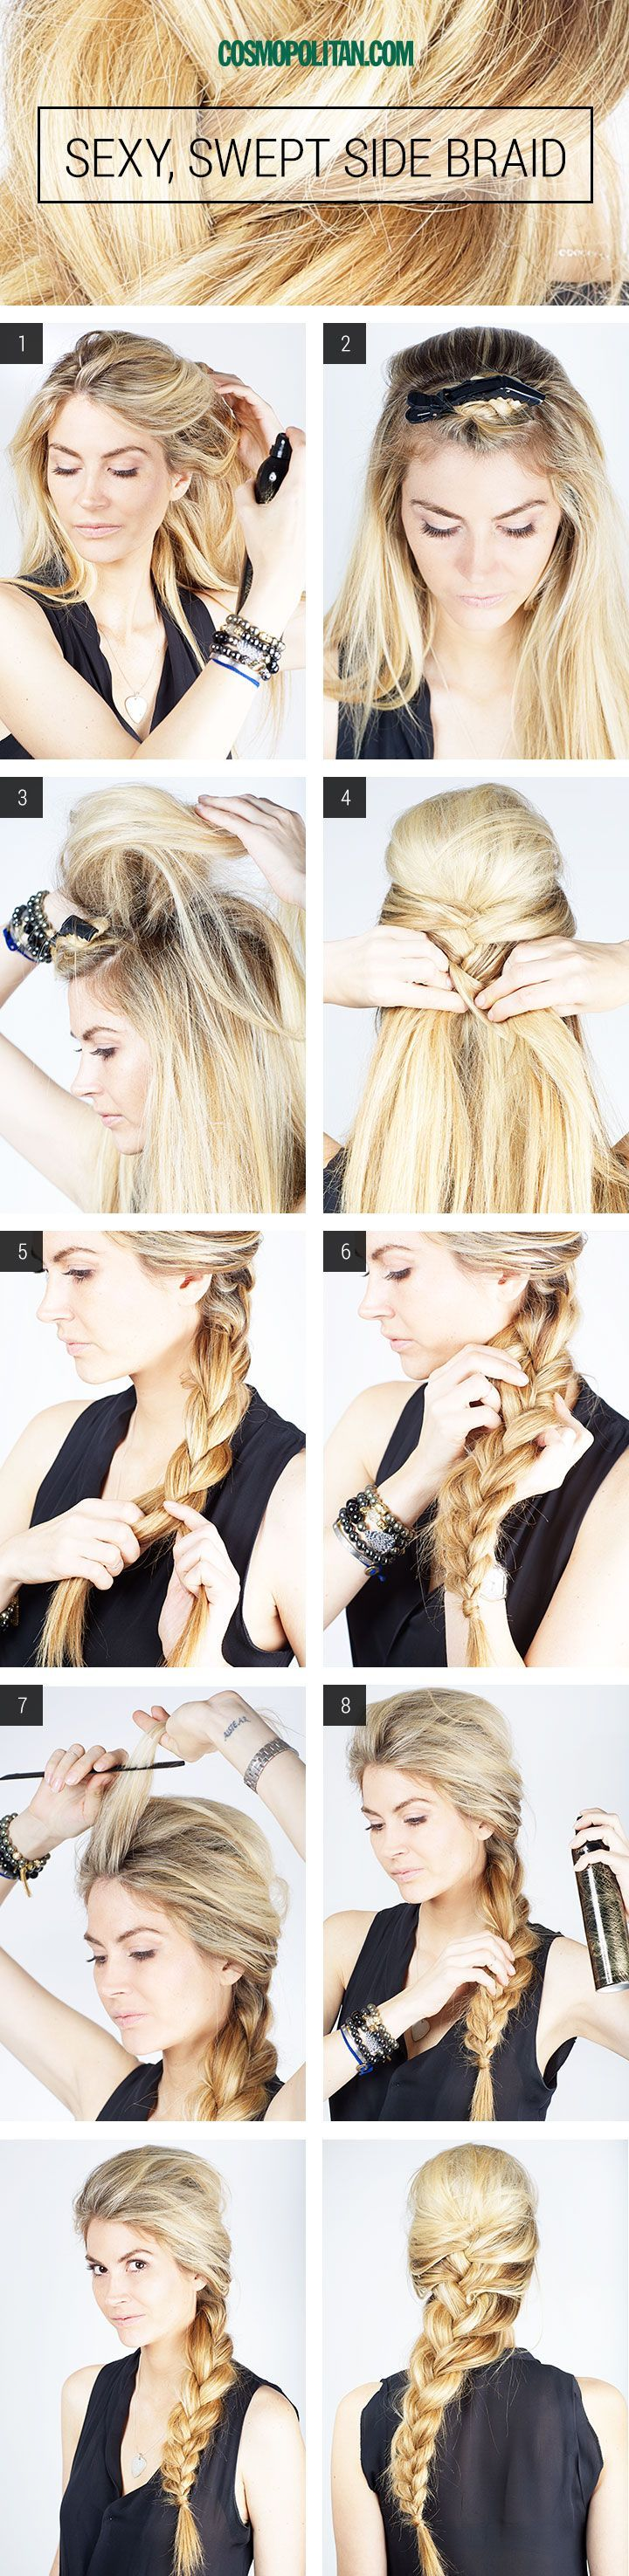 Date Night Hair Ideas You Need To Try